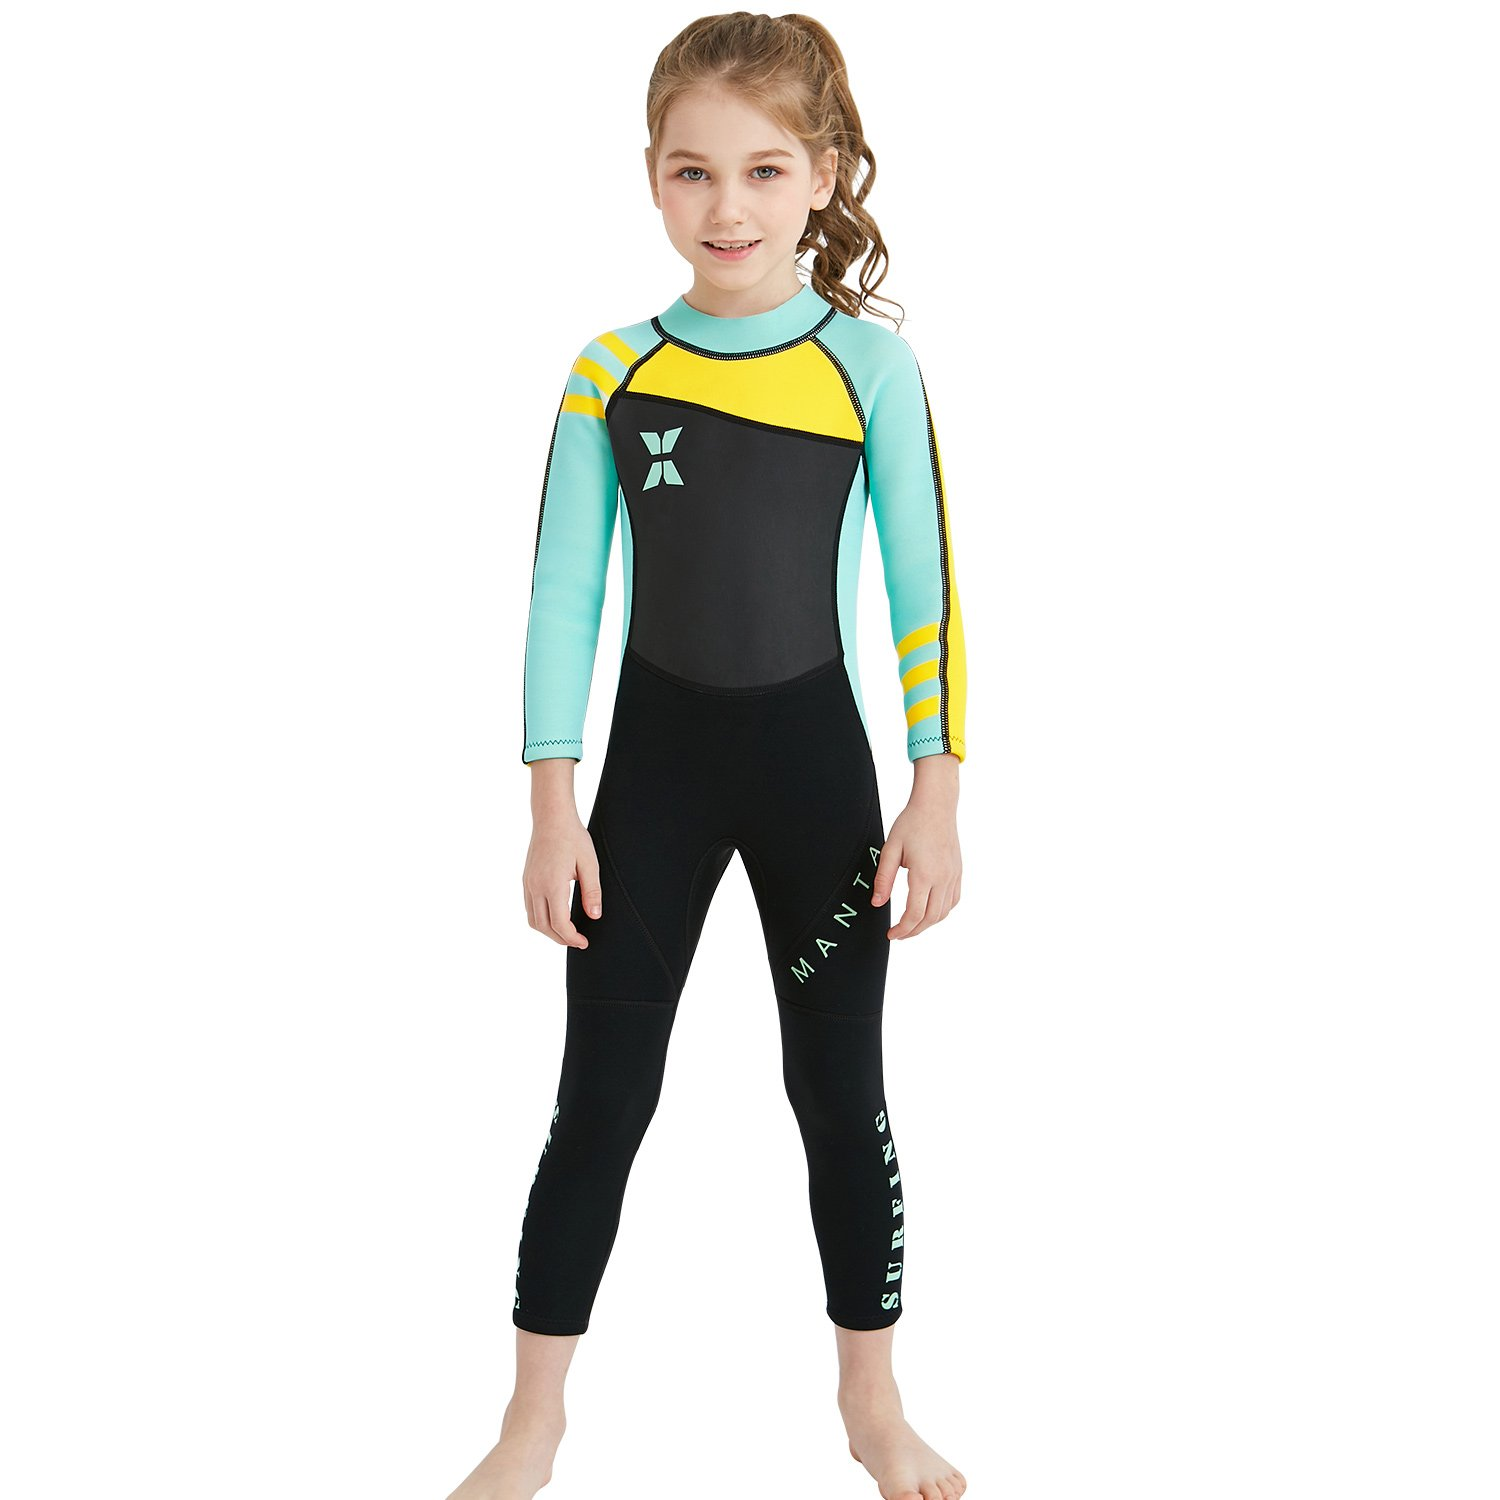 Dark Lightning Kids Wetsuit Full Thermal Suit, Grils Neoprene One Piece Fishing Suits, 2mm Long Sleeve Swimsuit for Children Scuba Diving, Surfing, Paddling, Swimming, Blue, S Size by Dark Lightning